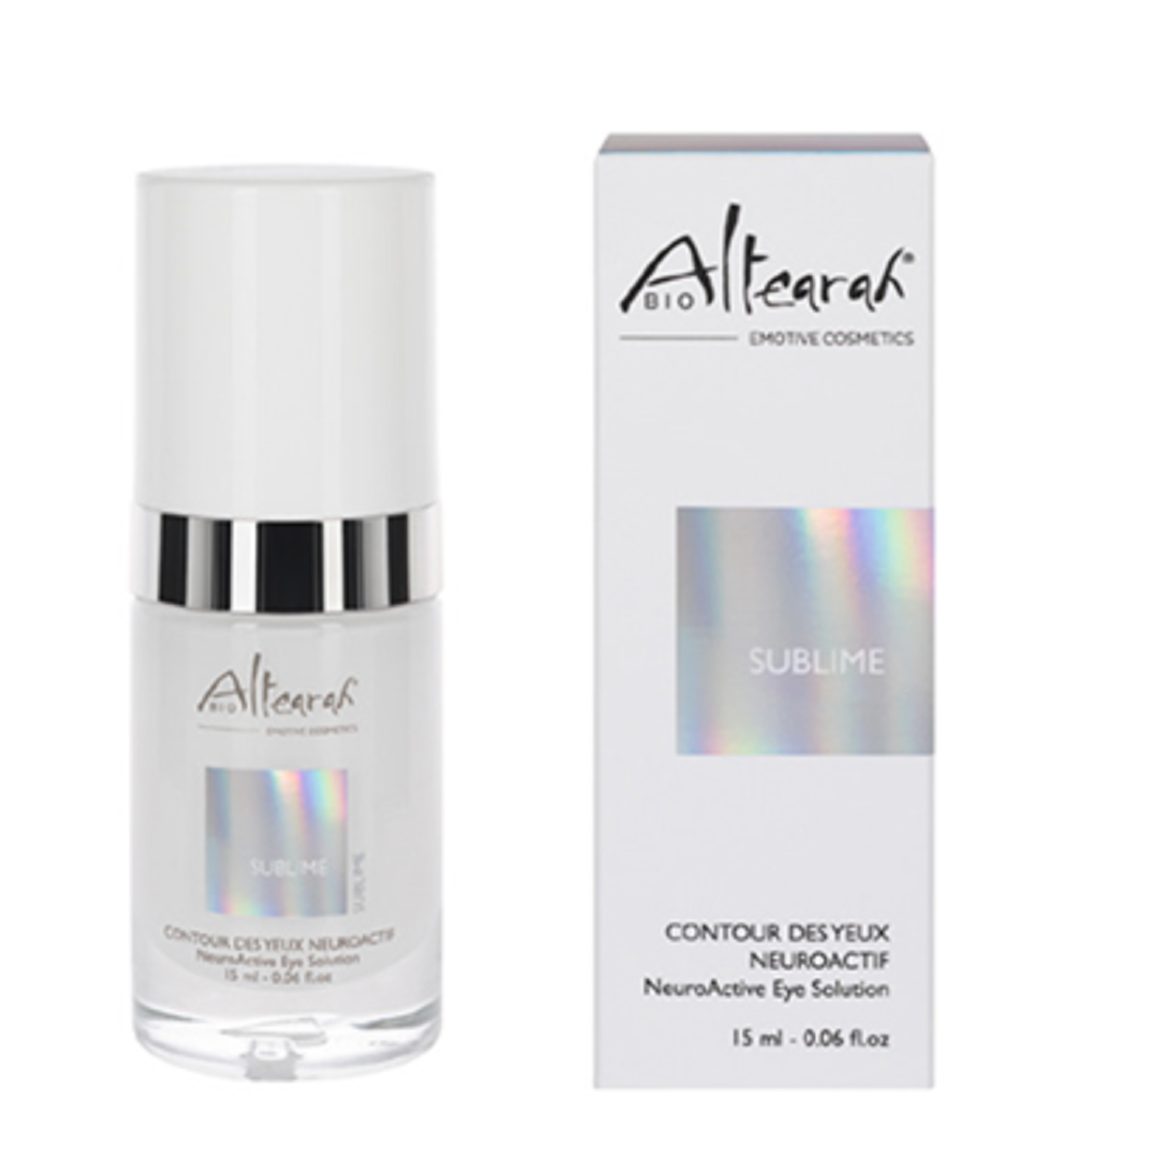 Sublime NeuroActive Eye Cream